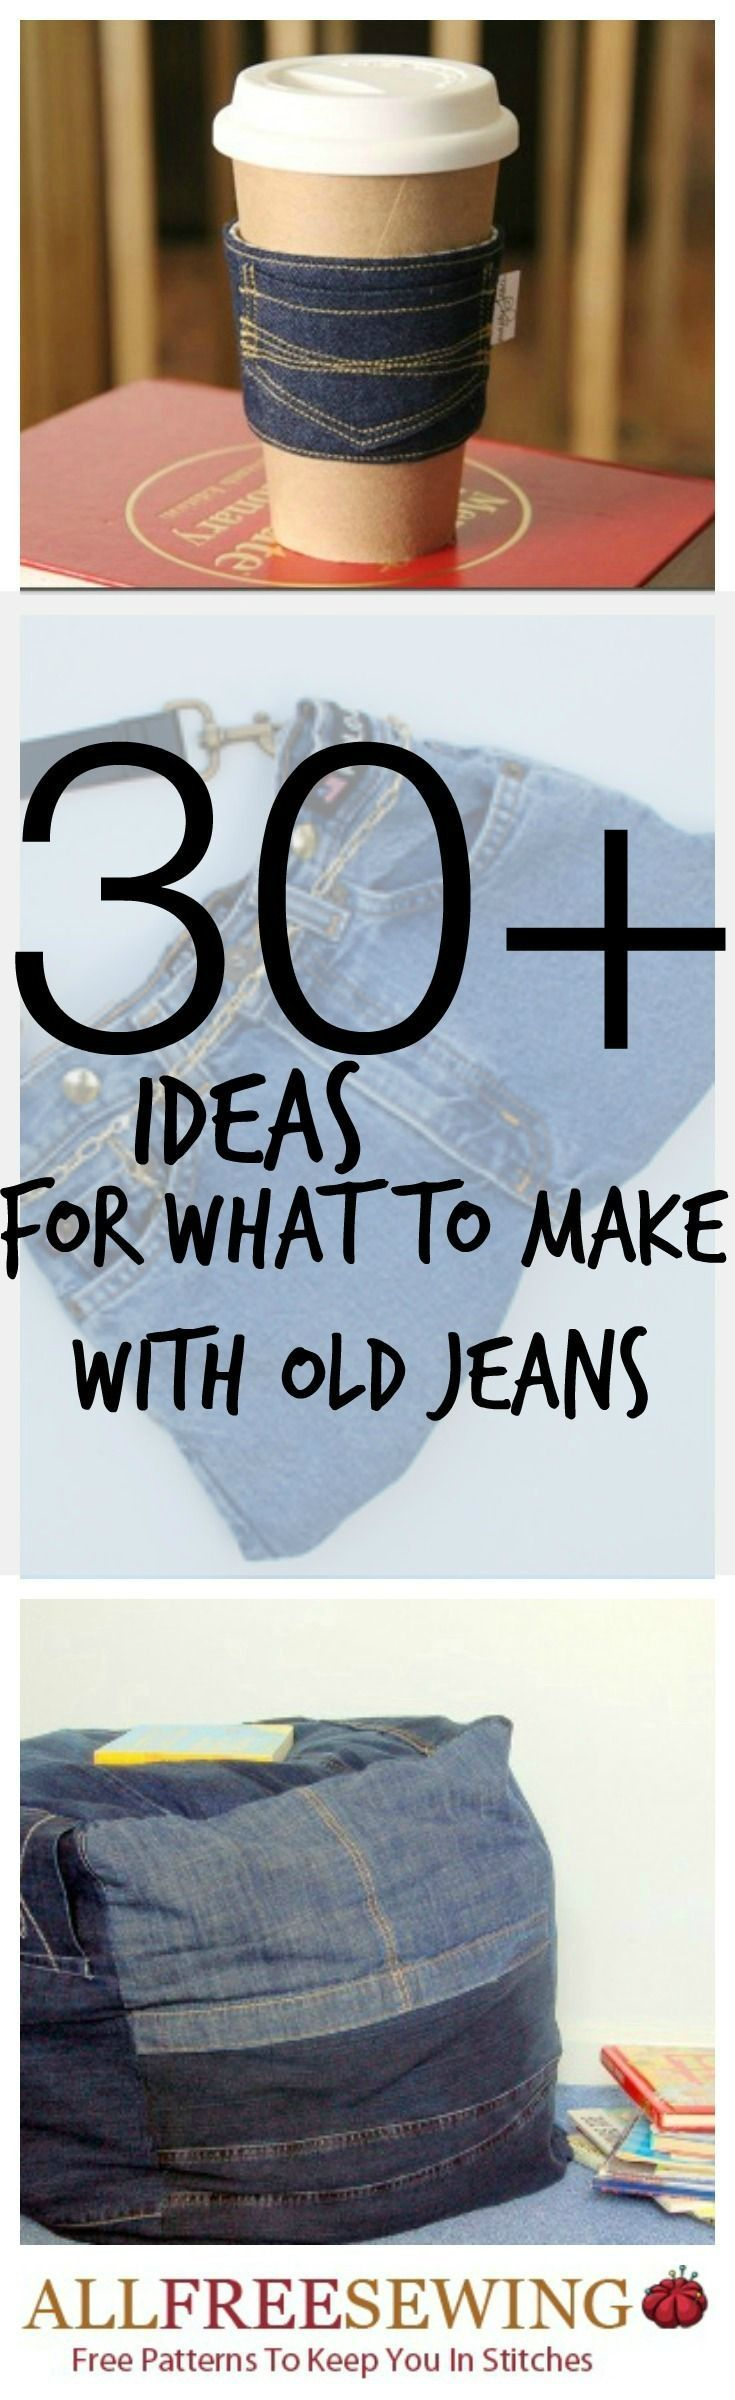 40  Ideas for What to Make with Old Jeans                                                                                                                                                      More